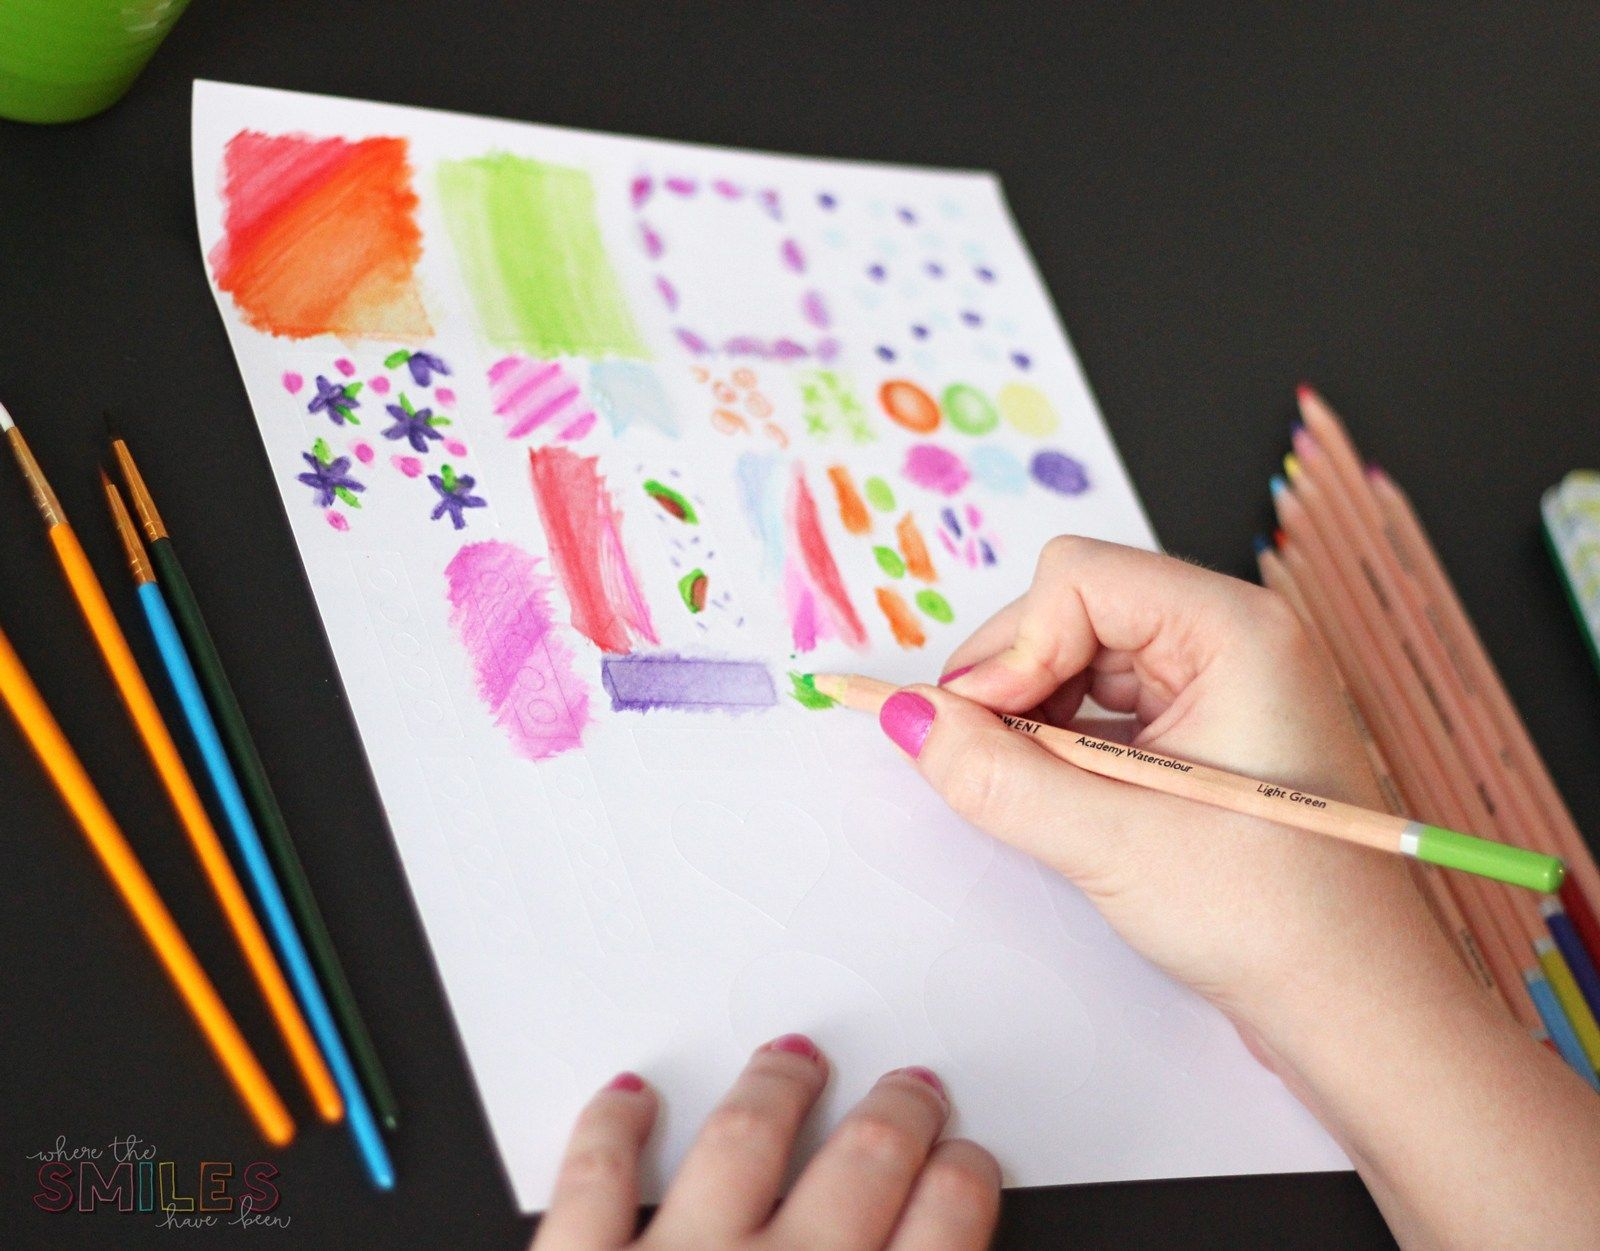 How To Make Watercolor Planner Stickers Using Watercolor Pencils